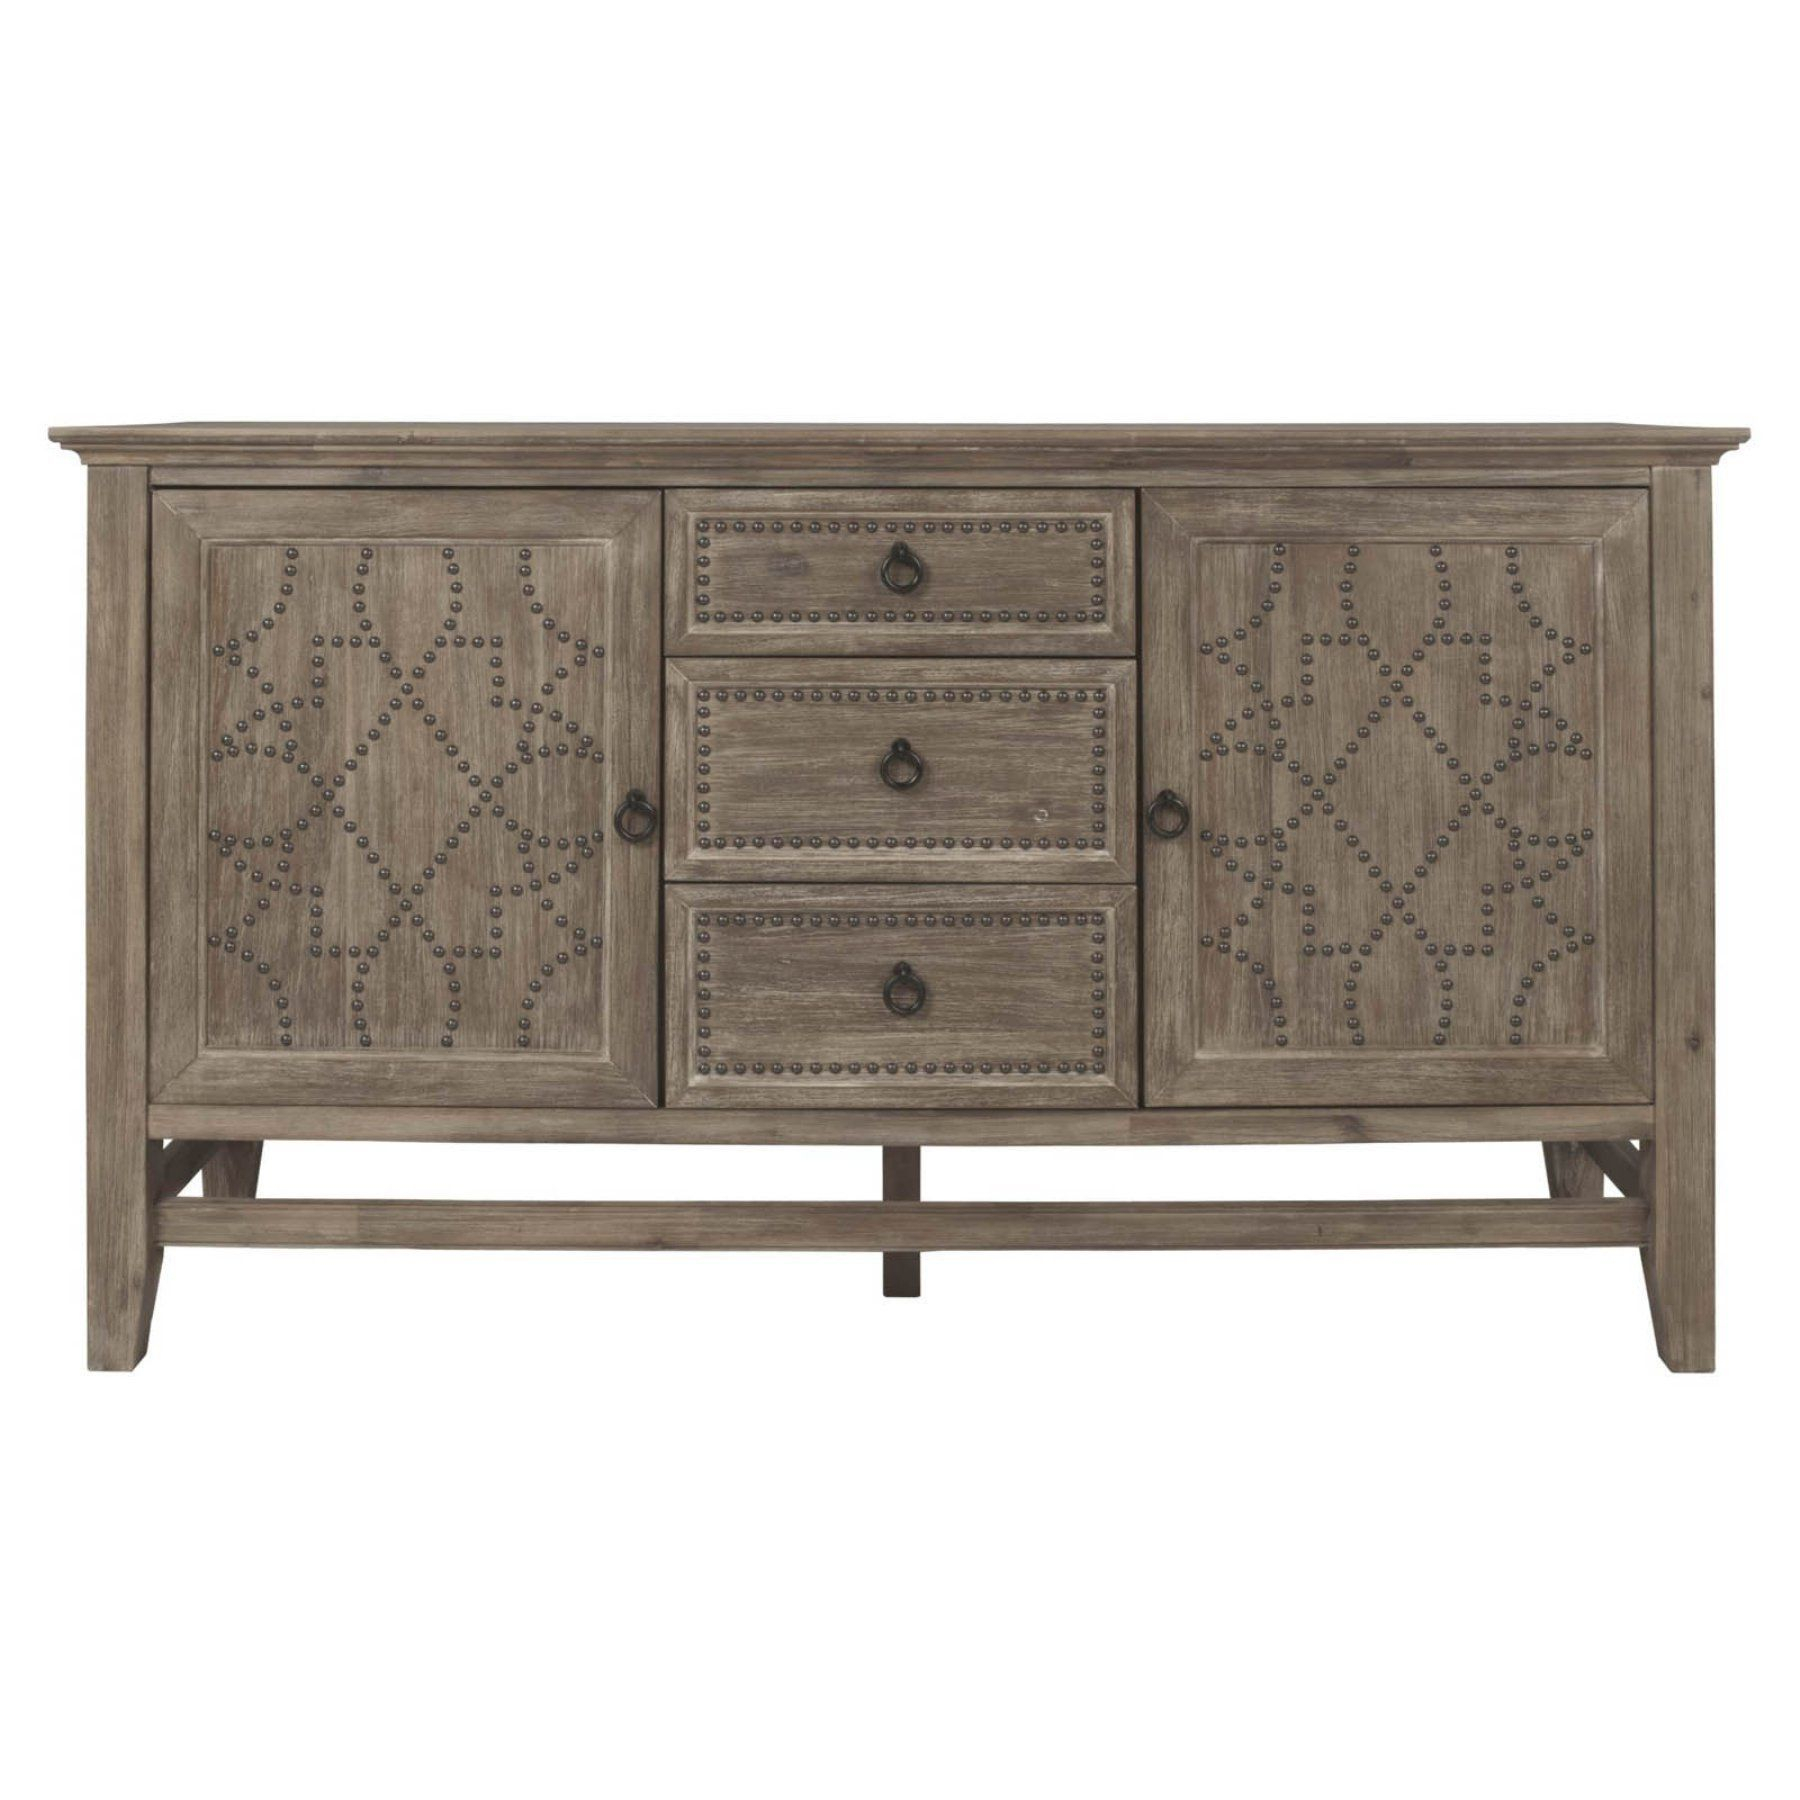 Orient Express Furniture Traditions Braxton Sideboard - 6092 in Palisade Sideboards (Image 18 of 30)